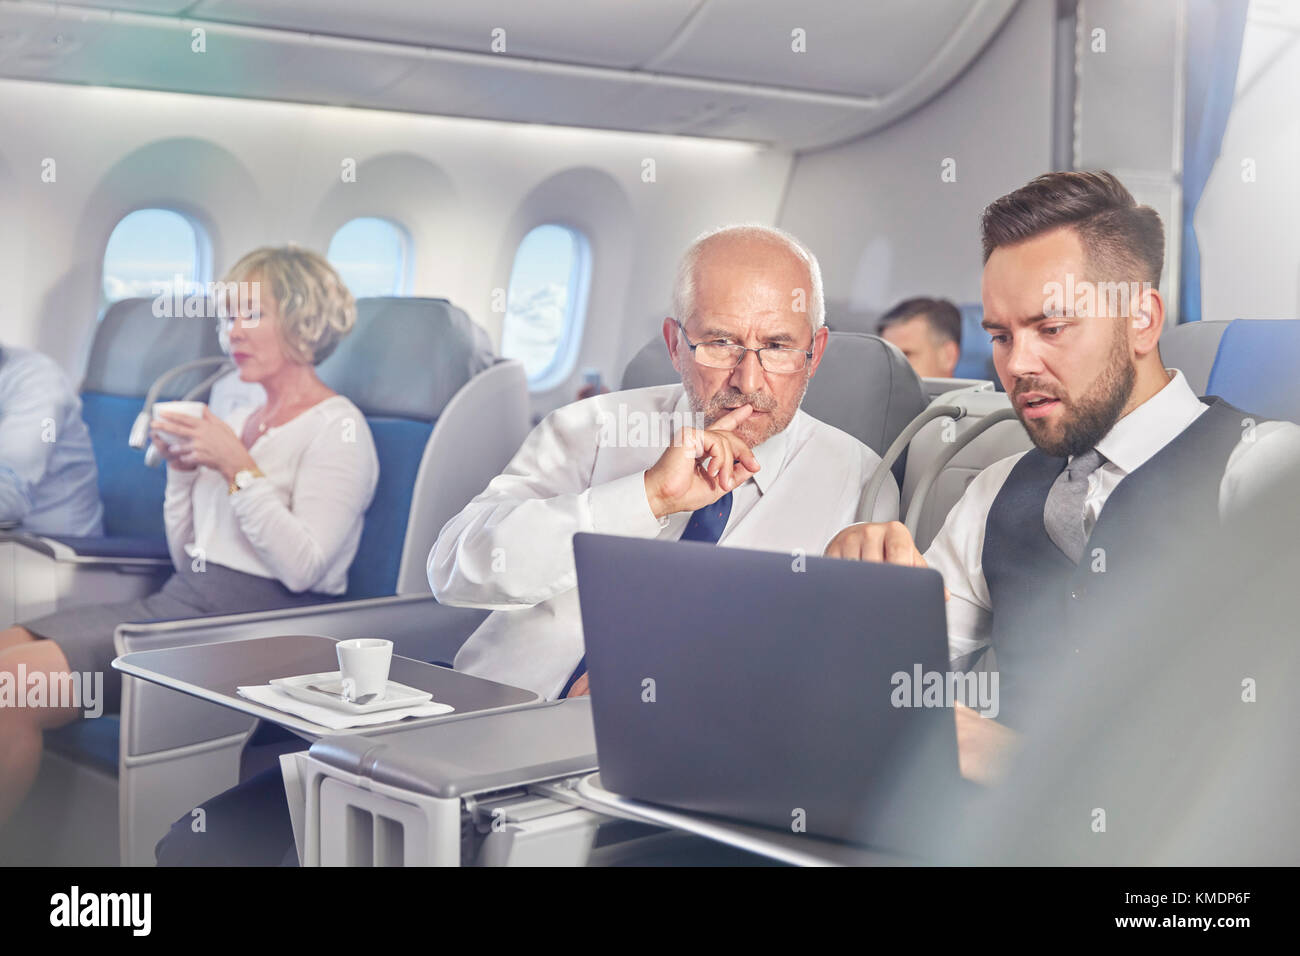 Businessmen working at laptop in first class on airplane - Stock Image